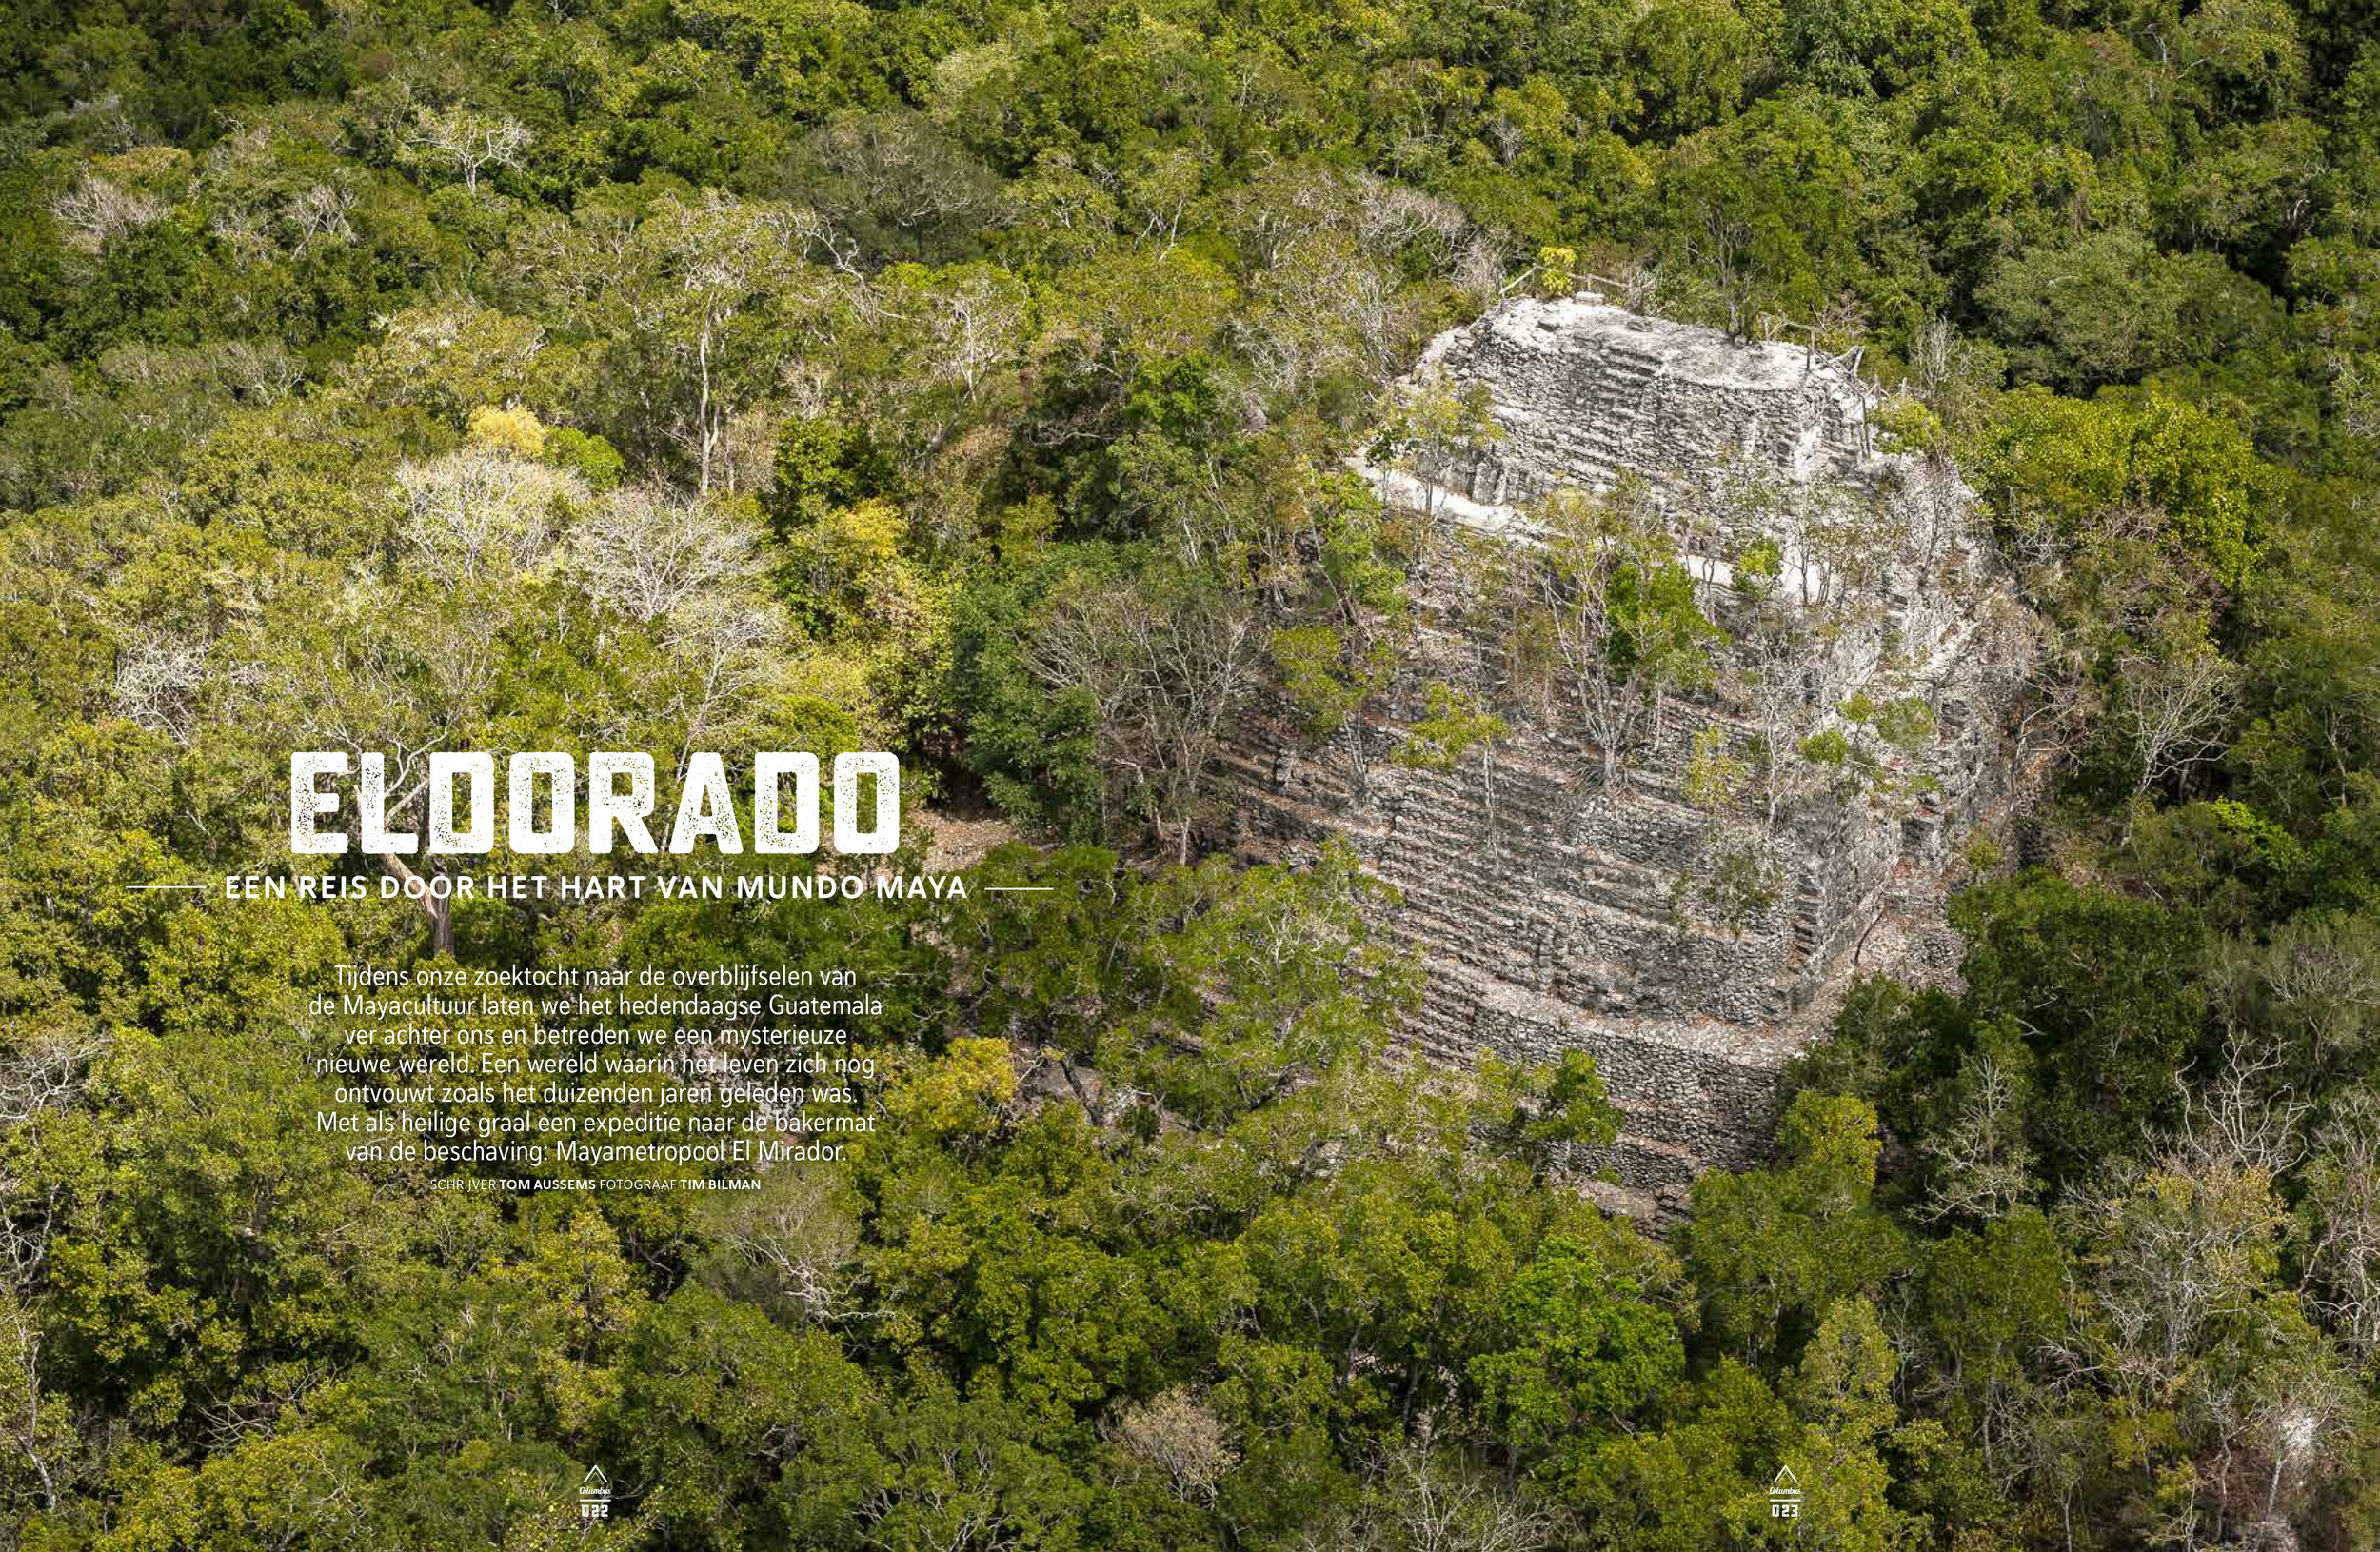 Guatemala - Februari '19 Tom and I went to the northern part of Guatemala. We dived deep into the Maya culture and visited the biggest Maya complex in the world 'El Mirador'. Hidden deep in the jungles of Peten. The article was published in July '19 in Columbus travel edition 82.